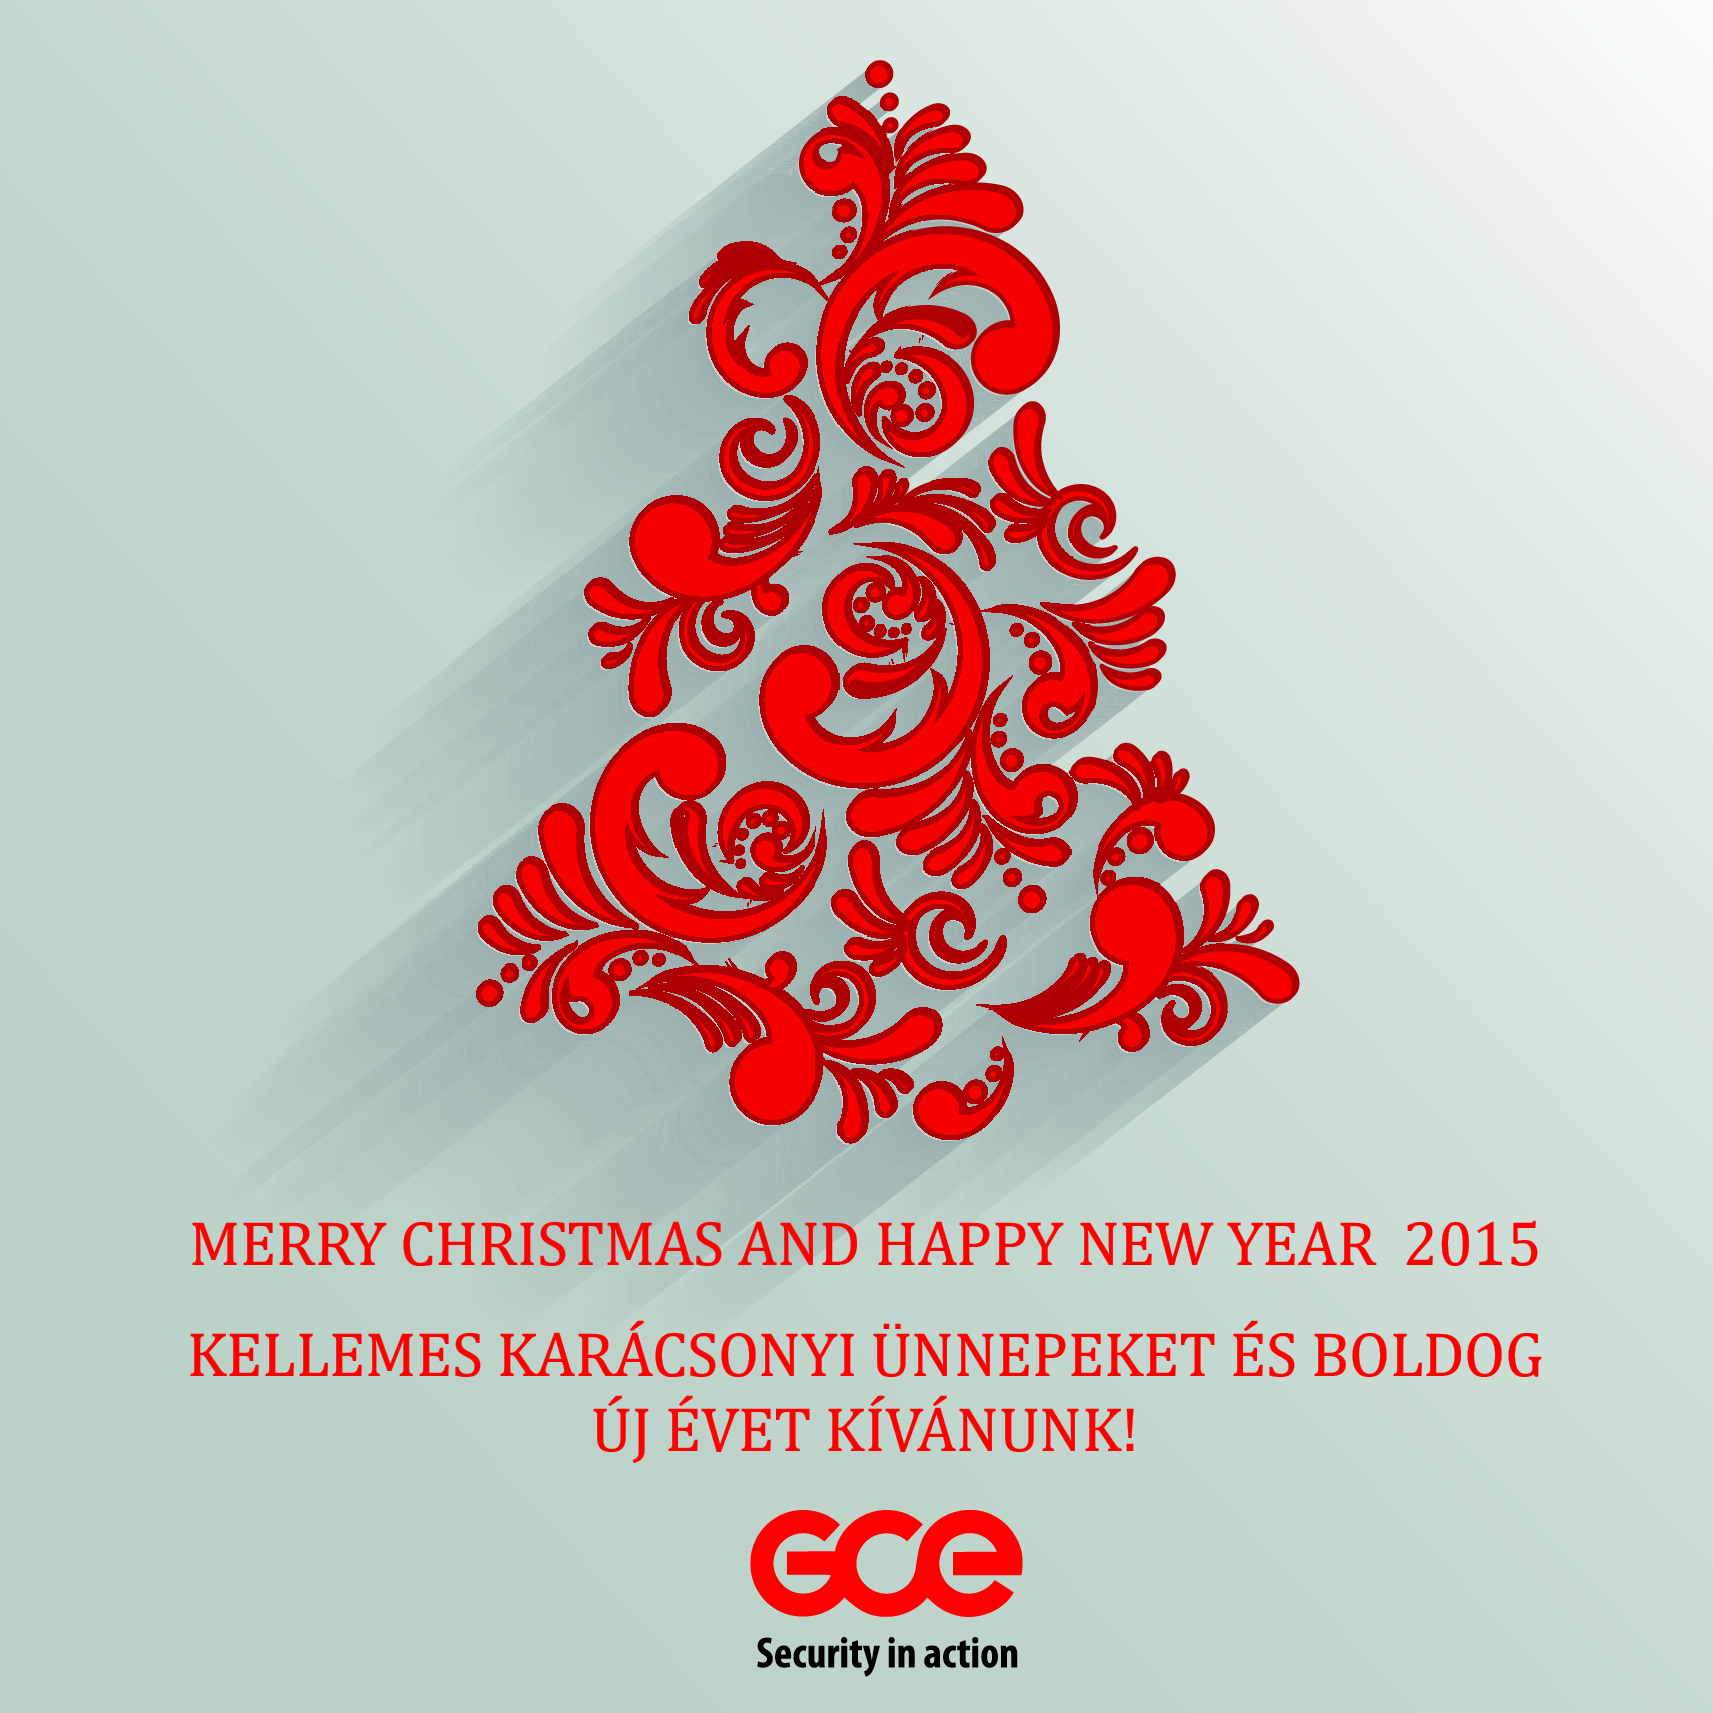 merry christmas and happy new year in hungarian